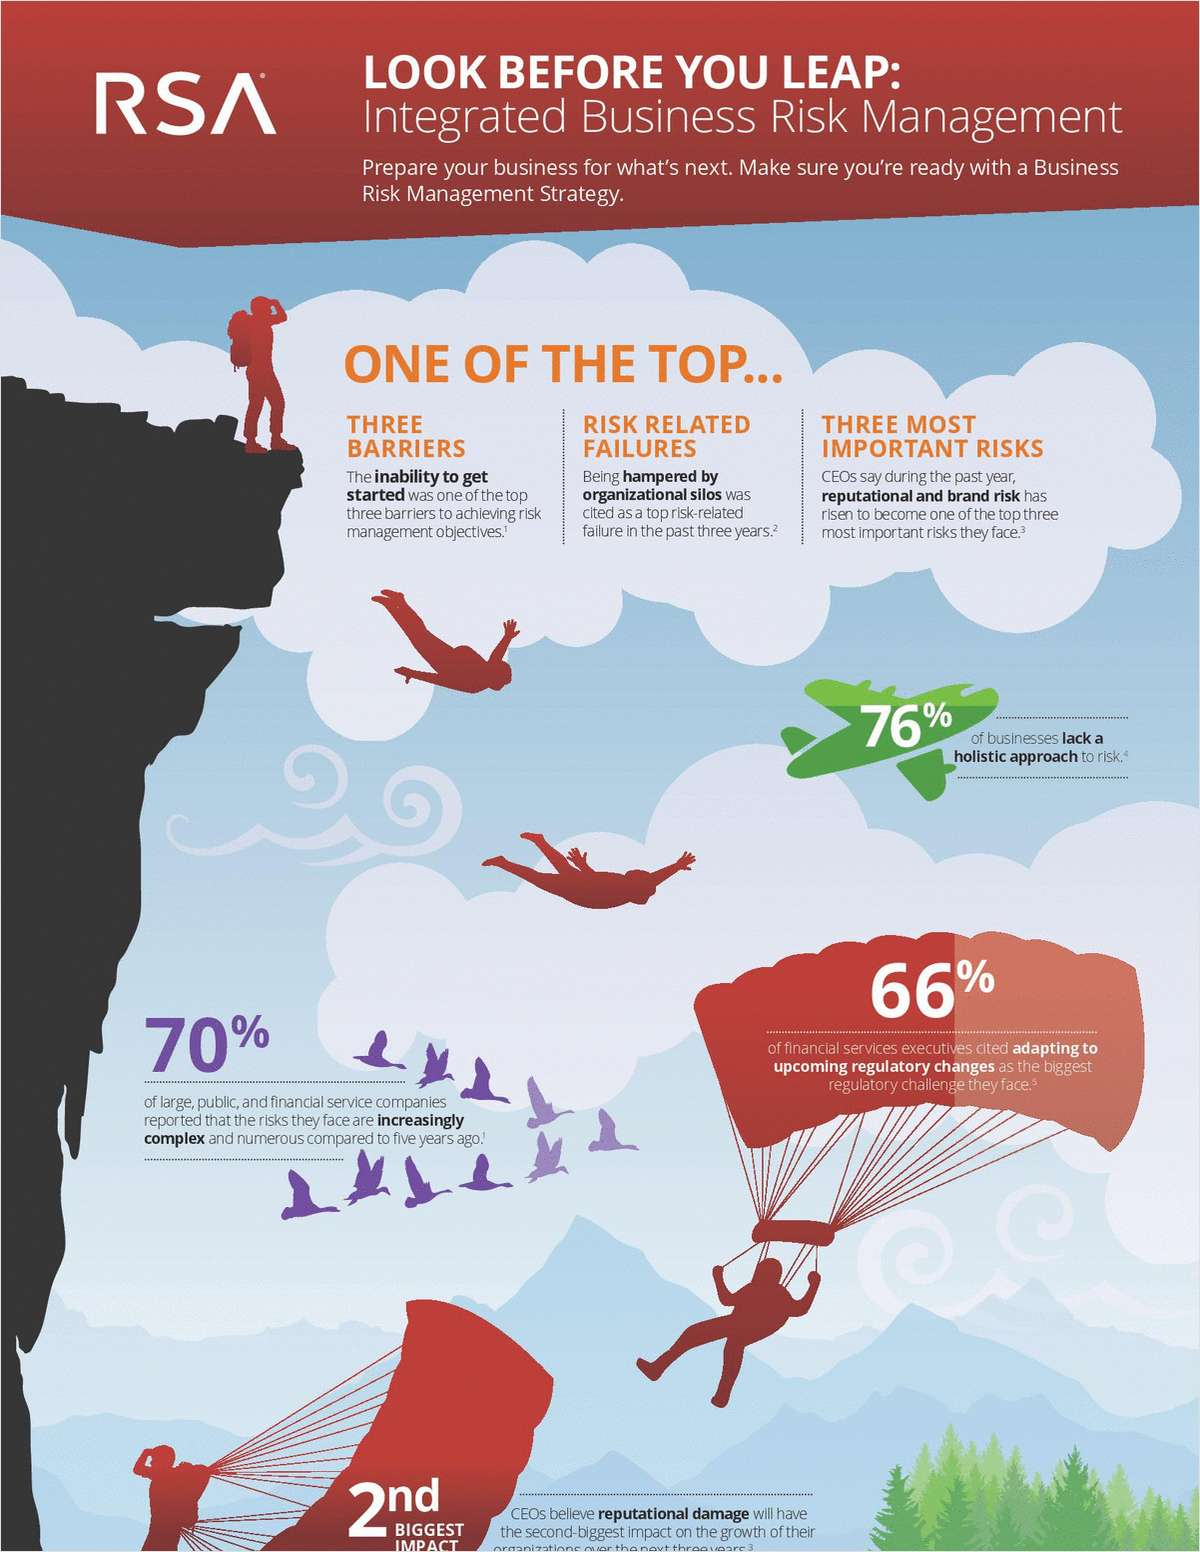 Look Before You Leap: Integrated Business Risk Management